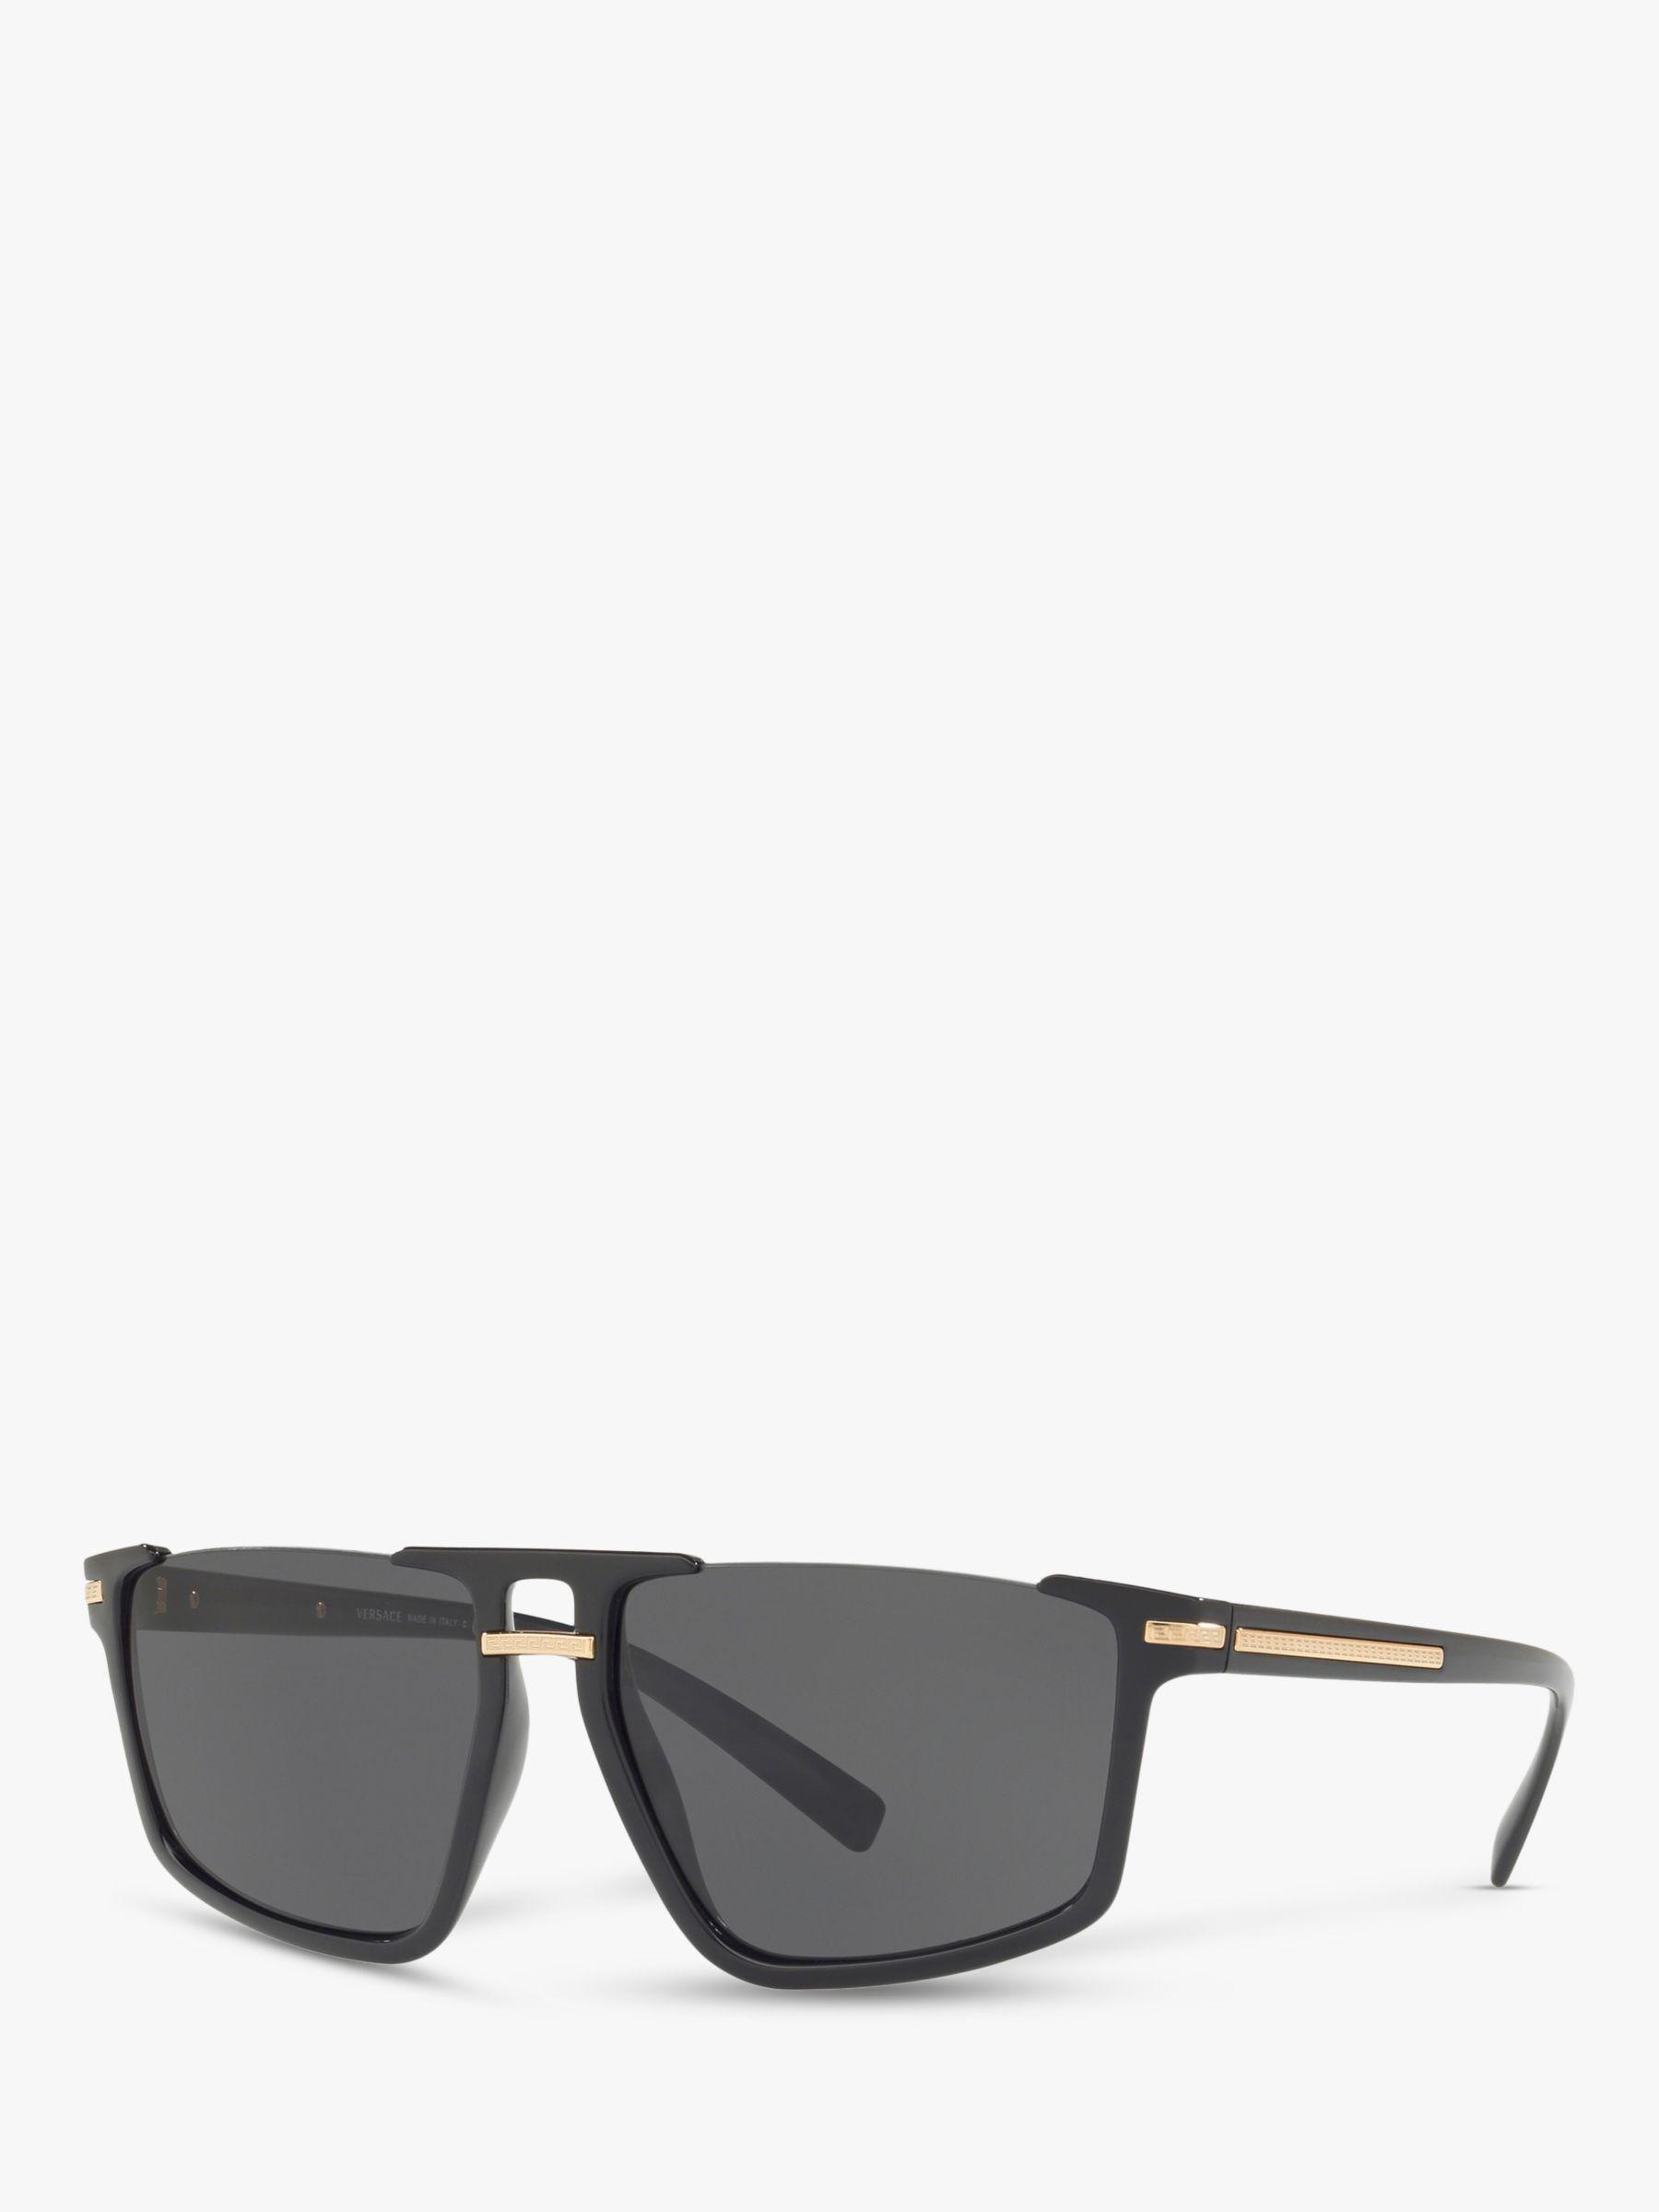 efd6d28437fa Versace Ve4363 Men s Rectangular Sunglasses in Black for Men - Lyst